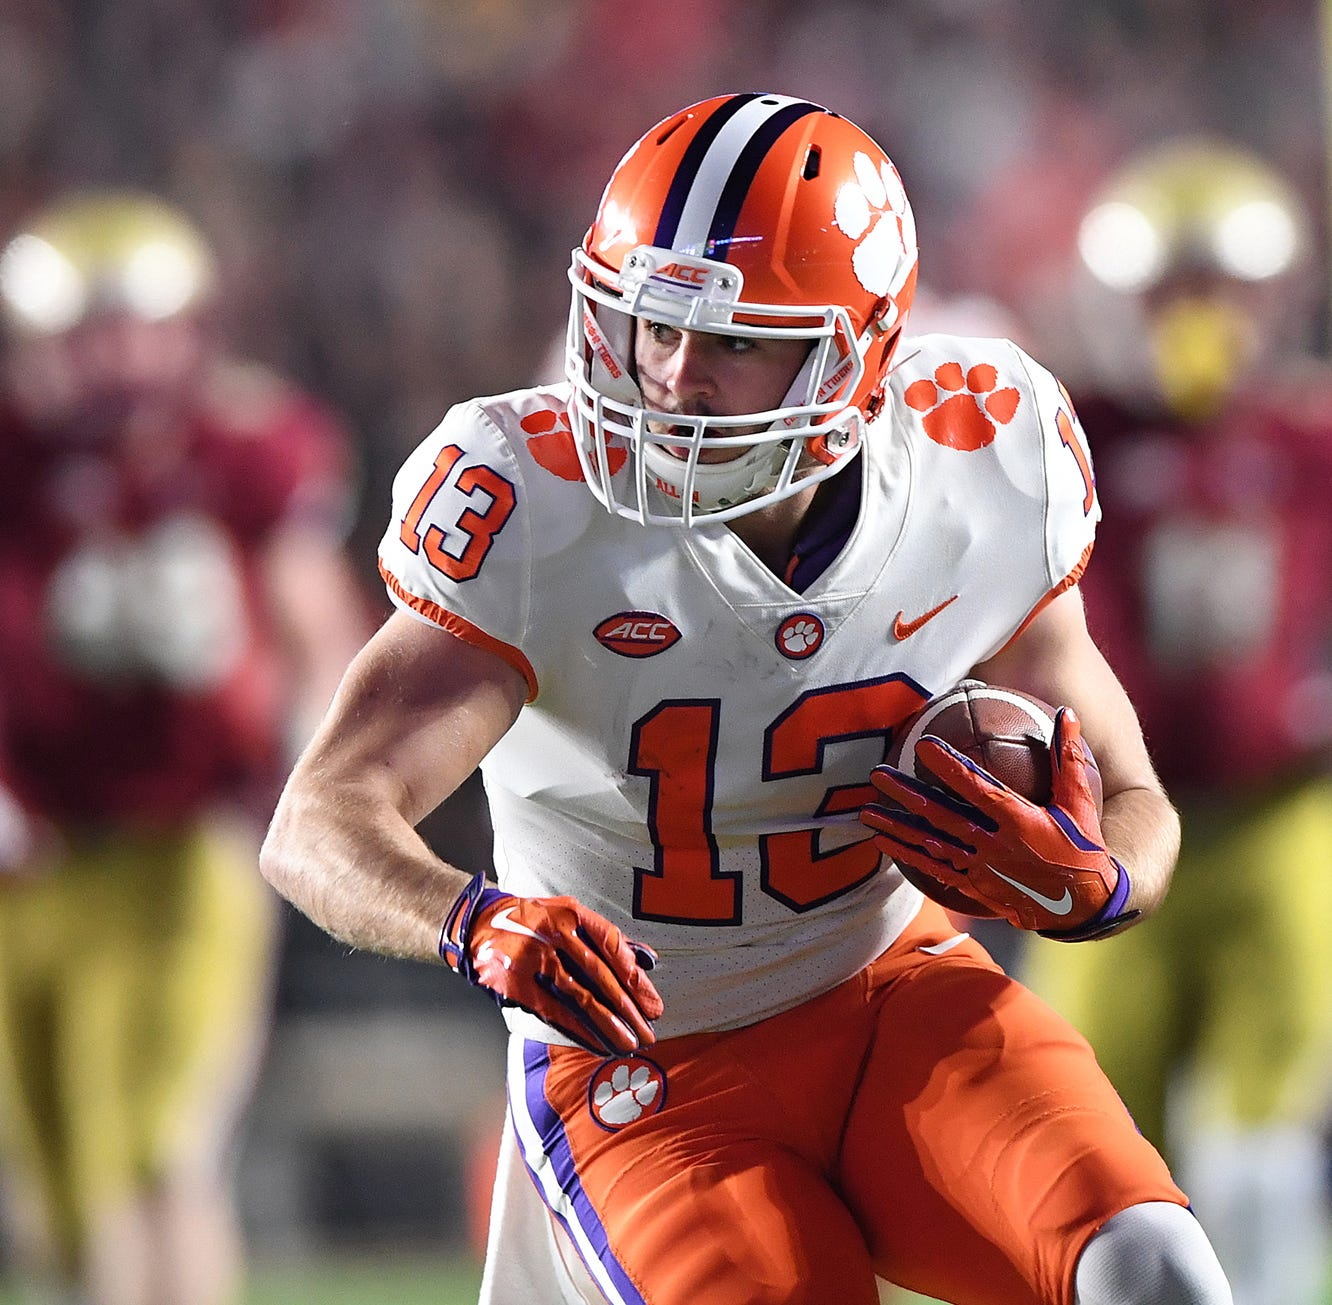 Clemson wide receiver Hunter Renfrow won't return to game after leaving early with injury